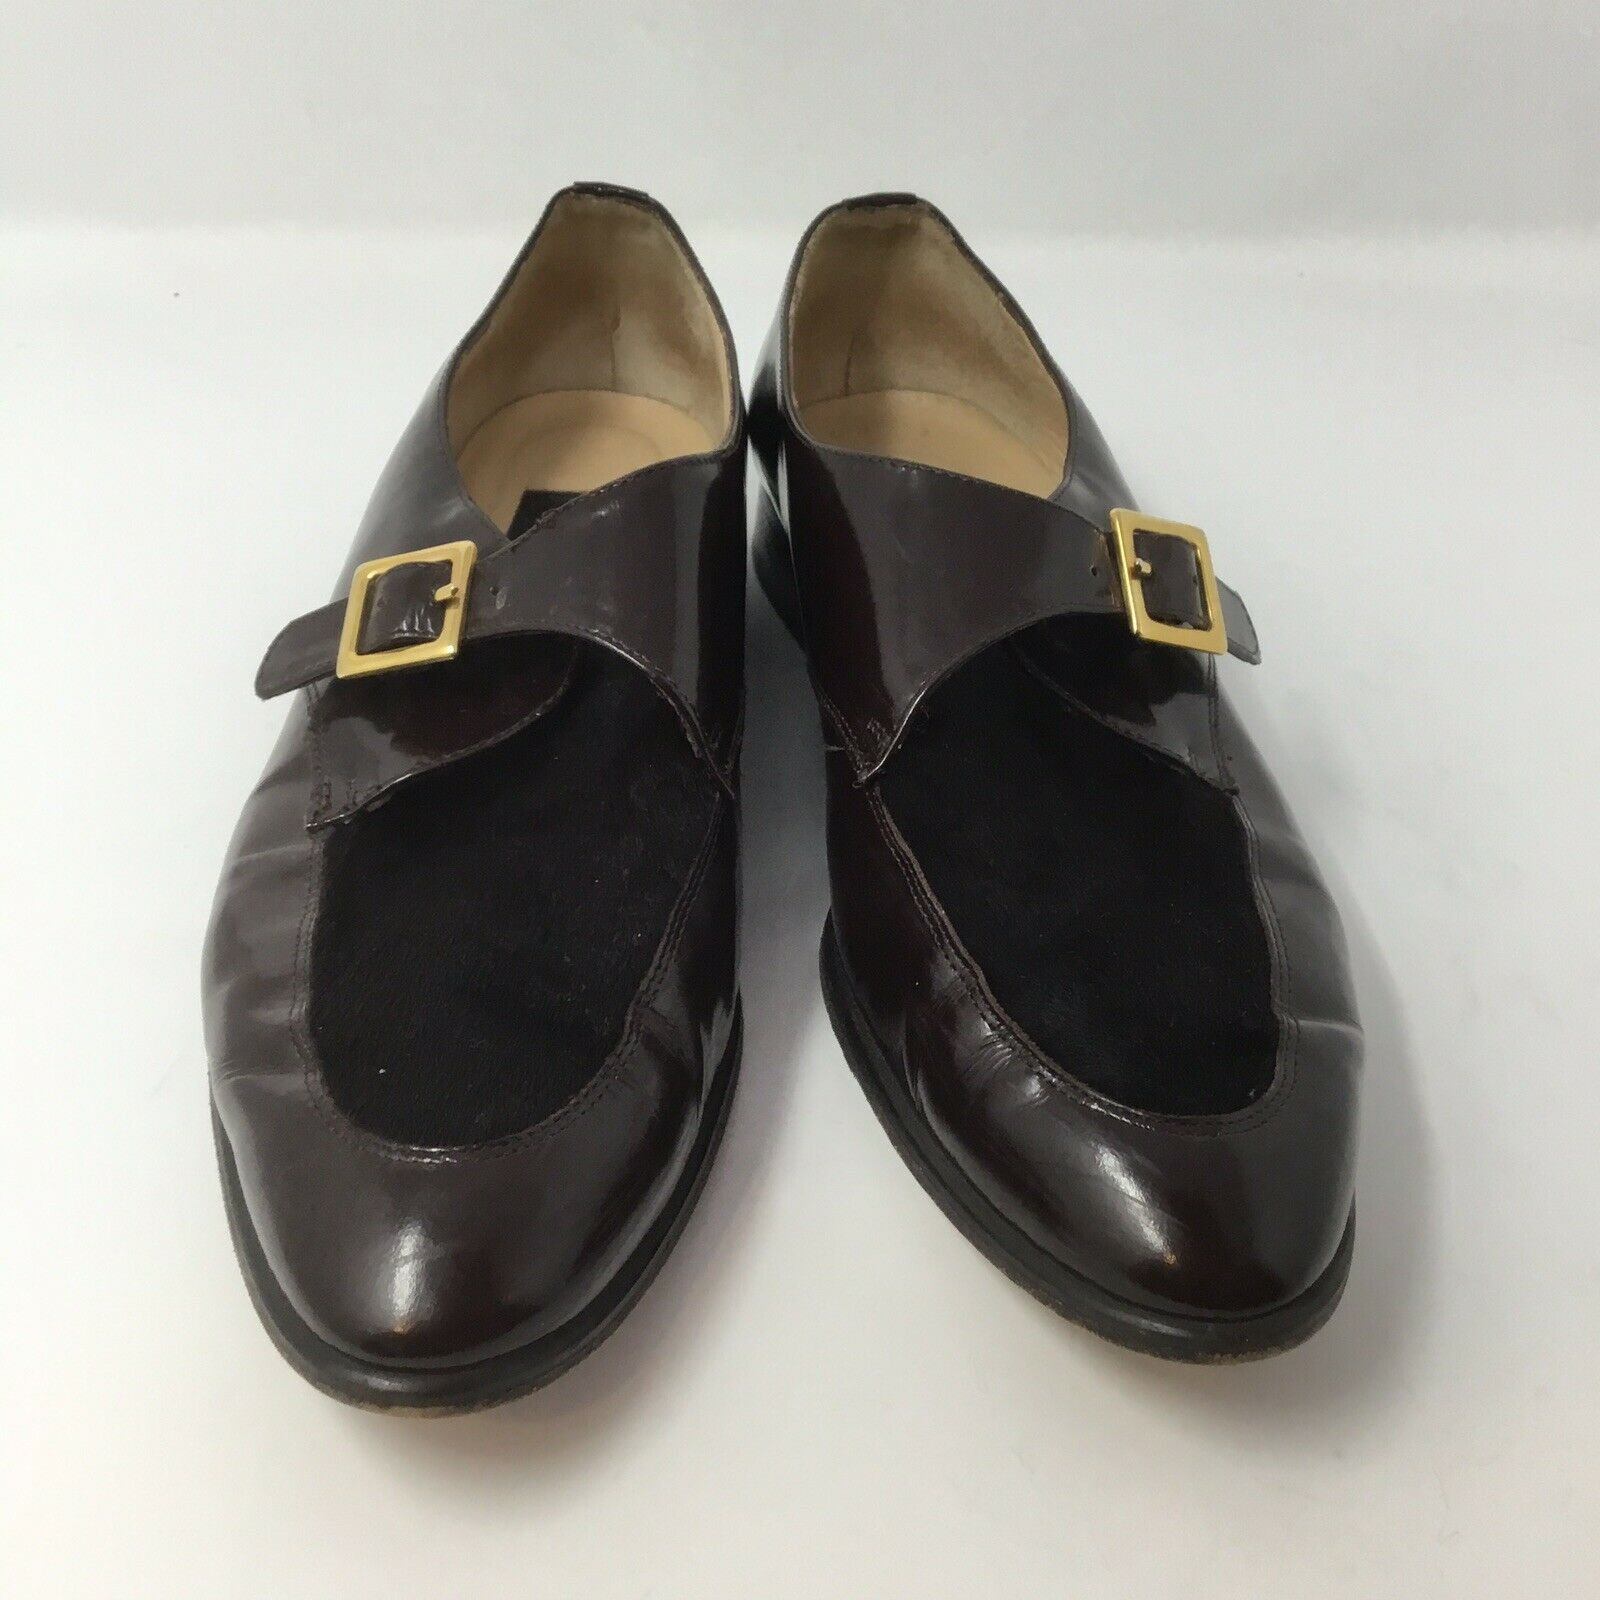 Classiques Entier womens brown monk strap flats leather calf hair size 9.5N poin